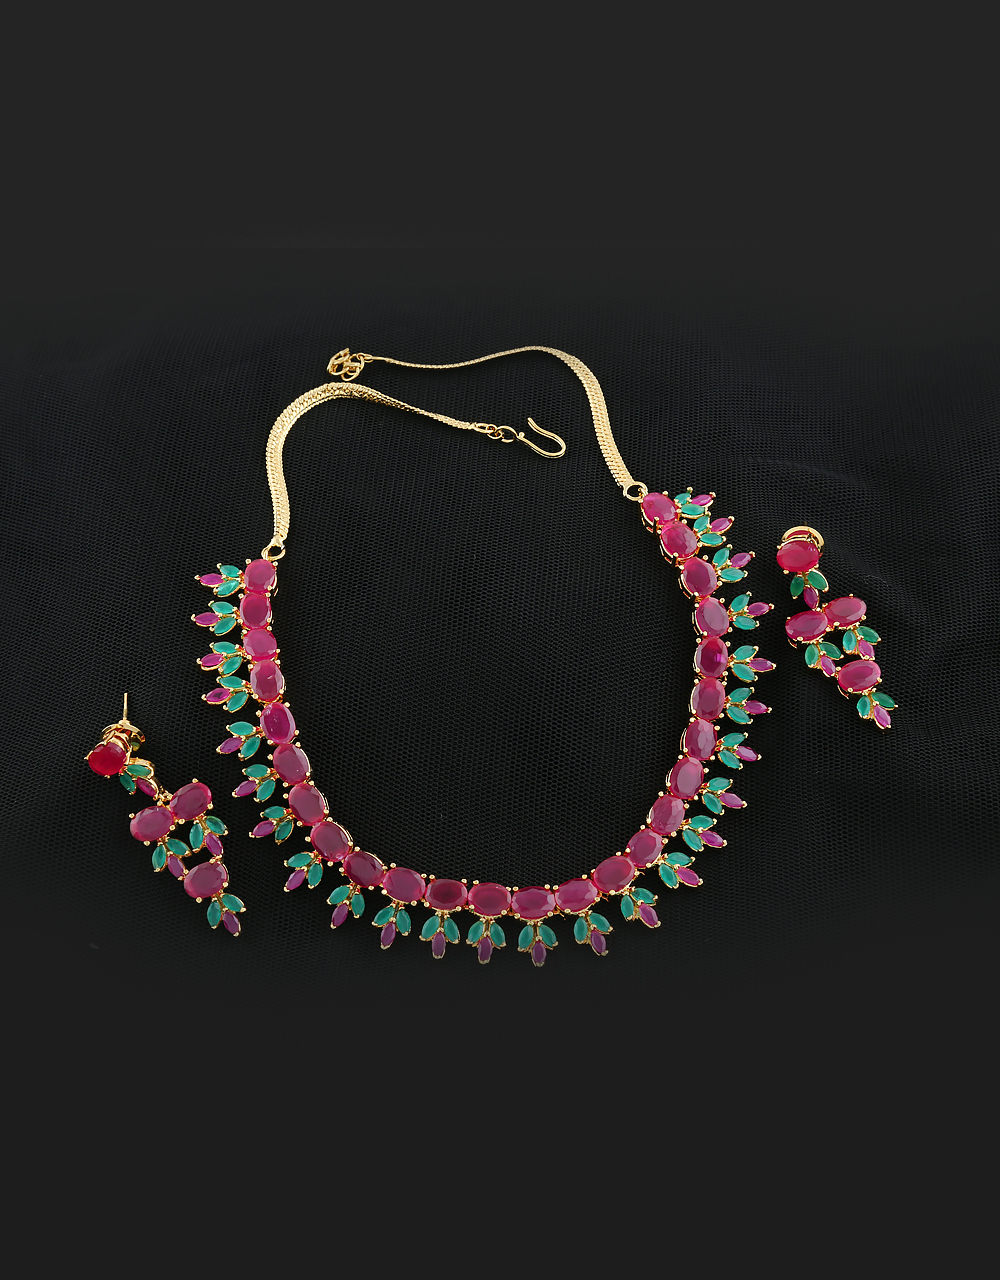 Multi Colored Fashionable Necklace Styled With Ruby Diamond Necklace